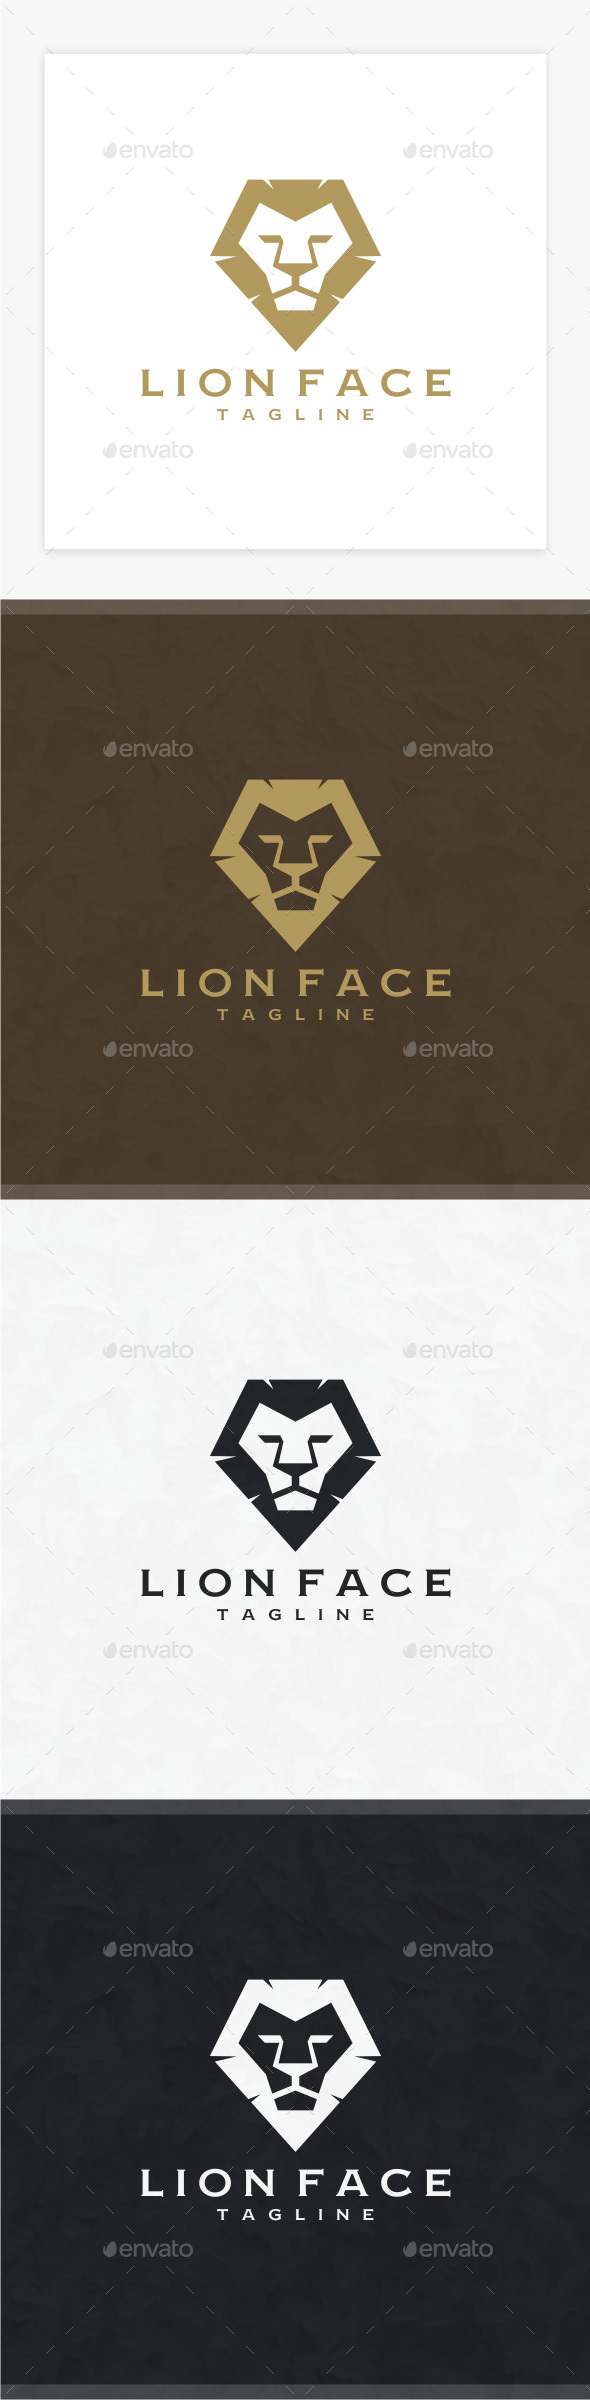 Lion Face Logo - Animals Logo Templates